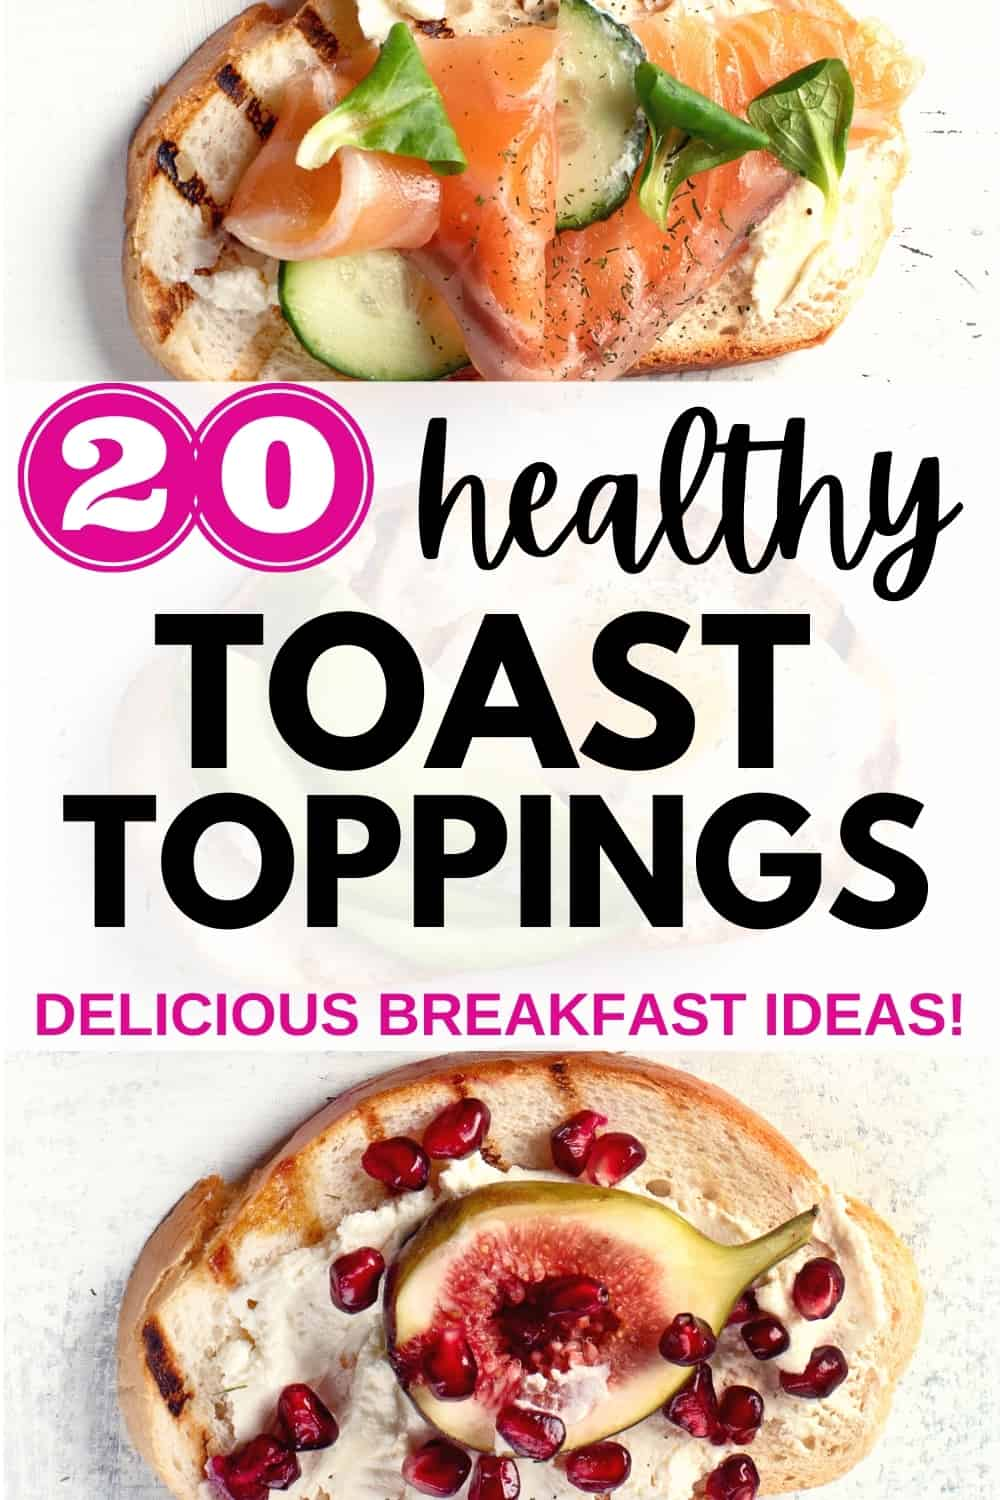 a piece of toast with salmon and cucumbers and a piece of toast with ricotta, figs, and pomegranate